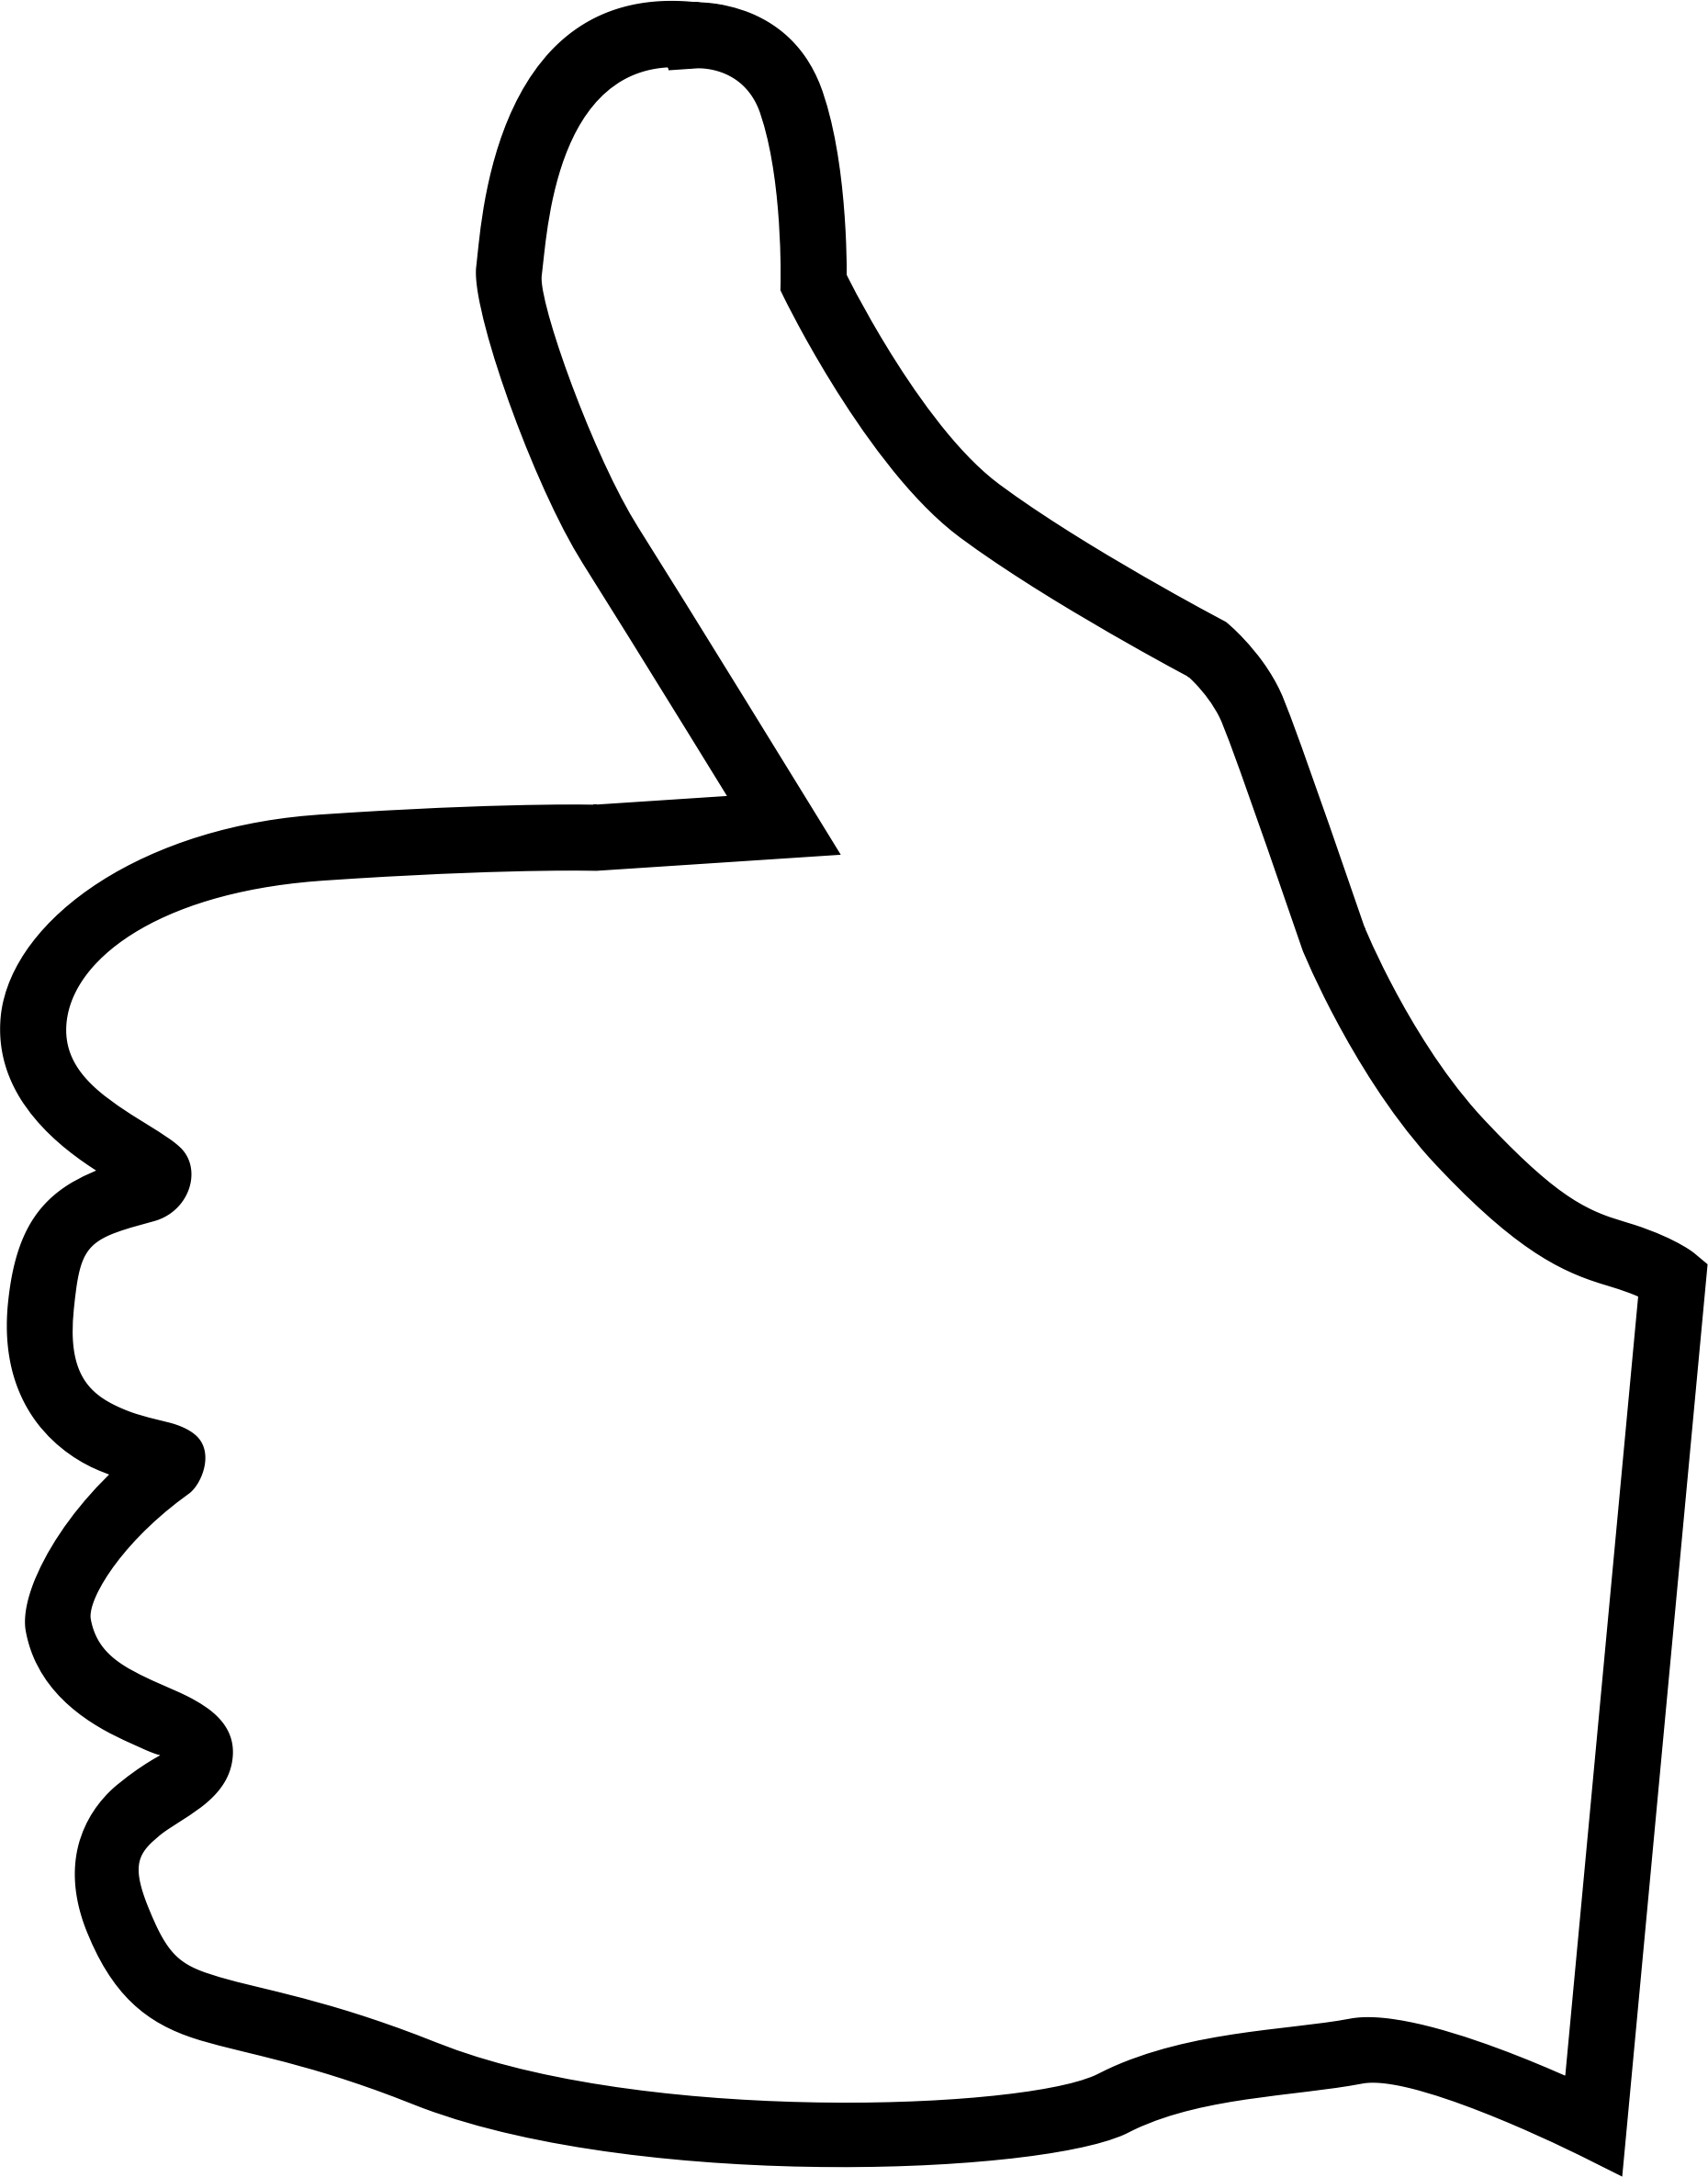 collection of no. Clipart skeleton thumbs up